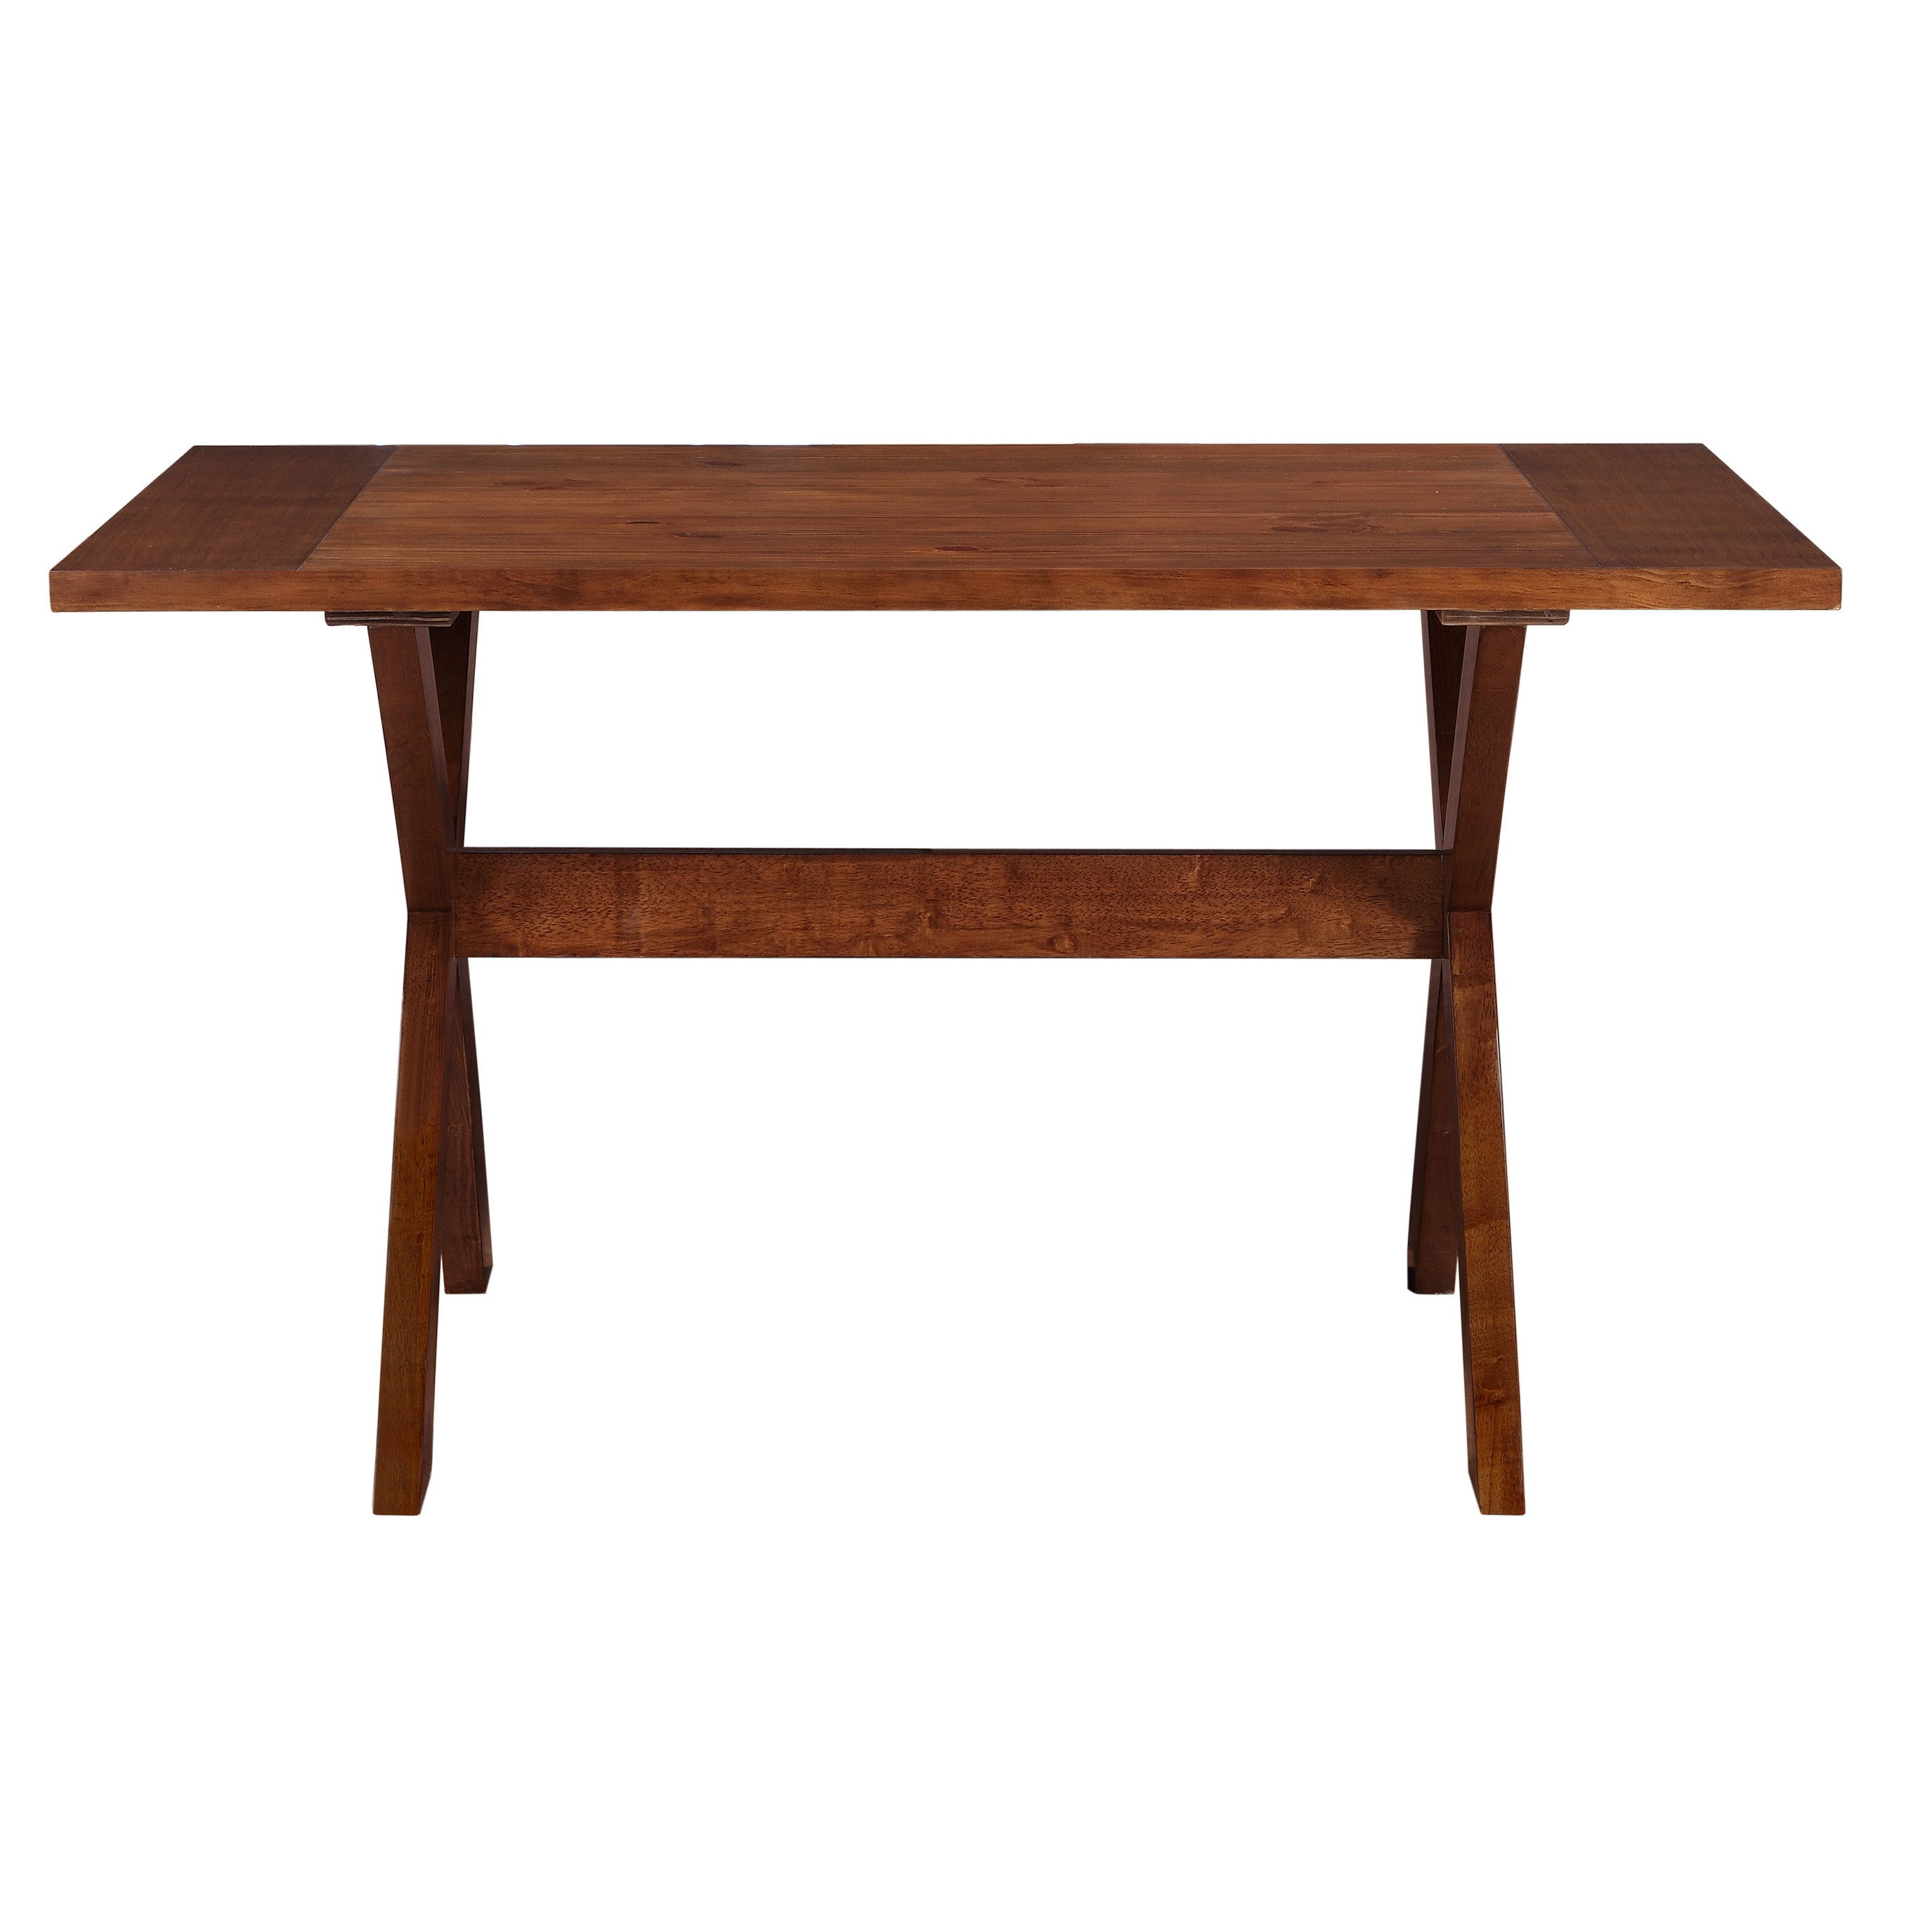 Best ideas about Trestle Dining Table . Save or Pin Dorel Living Trestle Dining Table & Reviews Now.